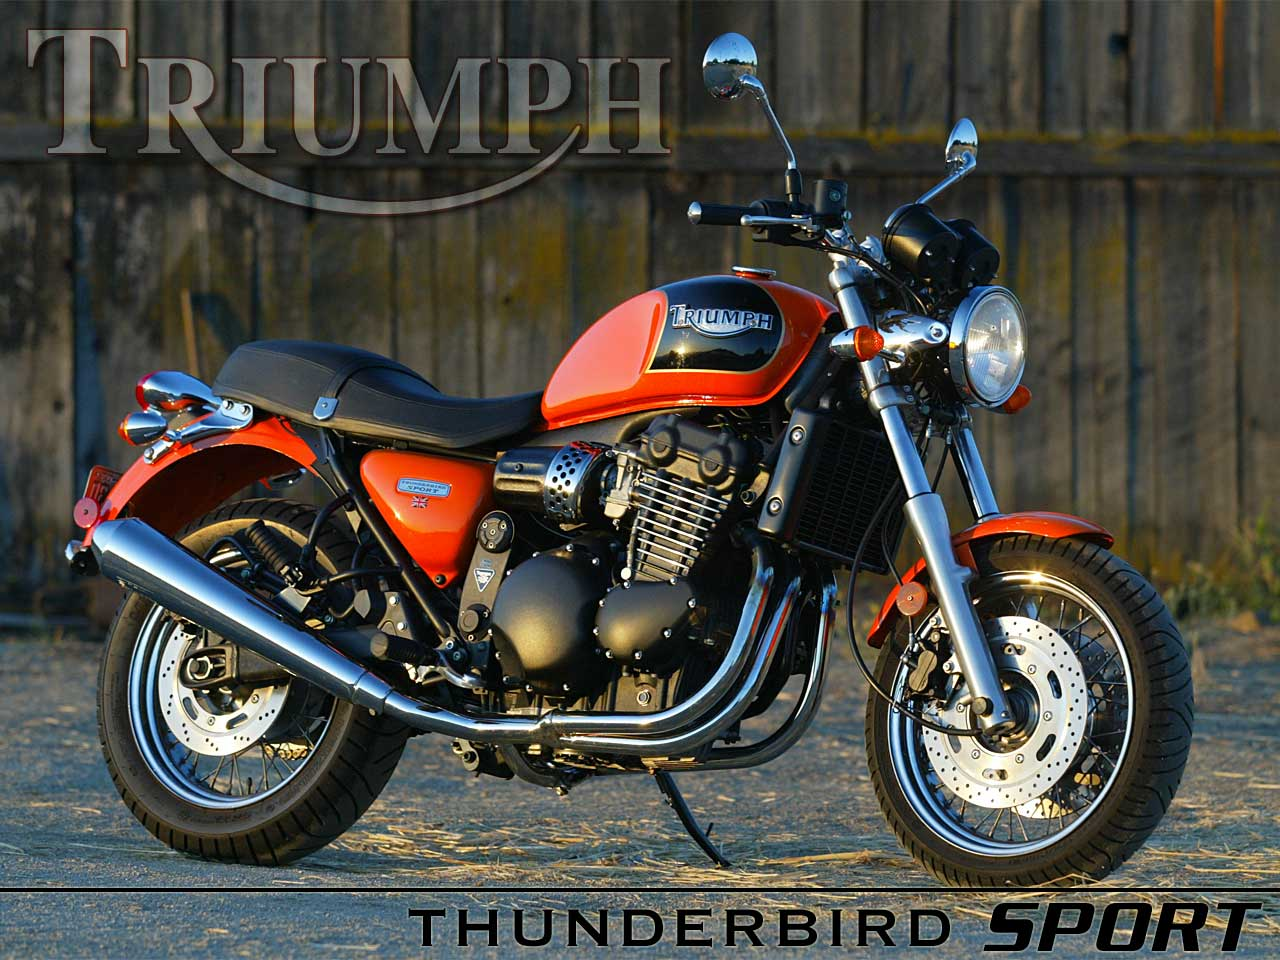 Triumph Adventurer 1999 images #125169